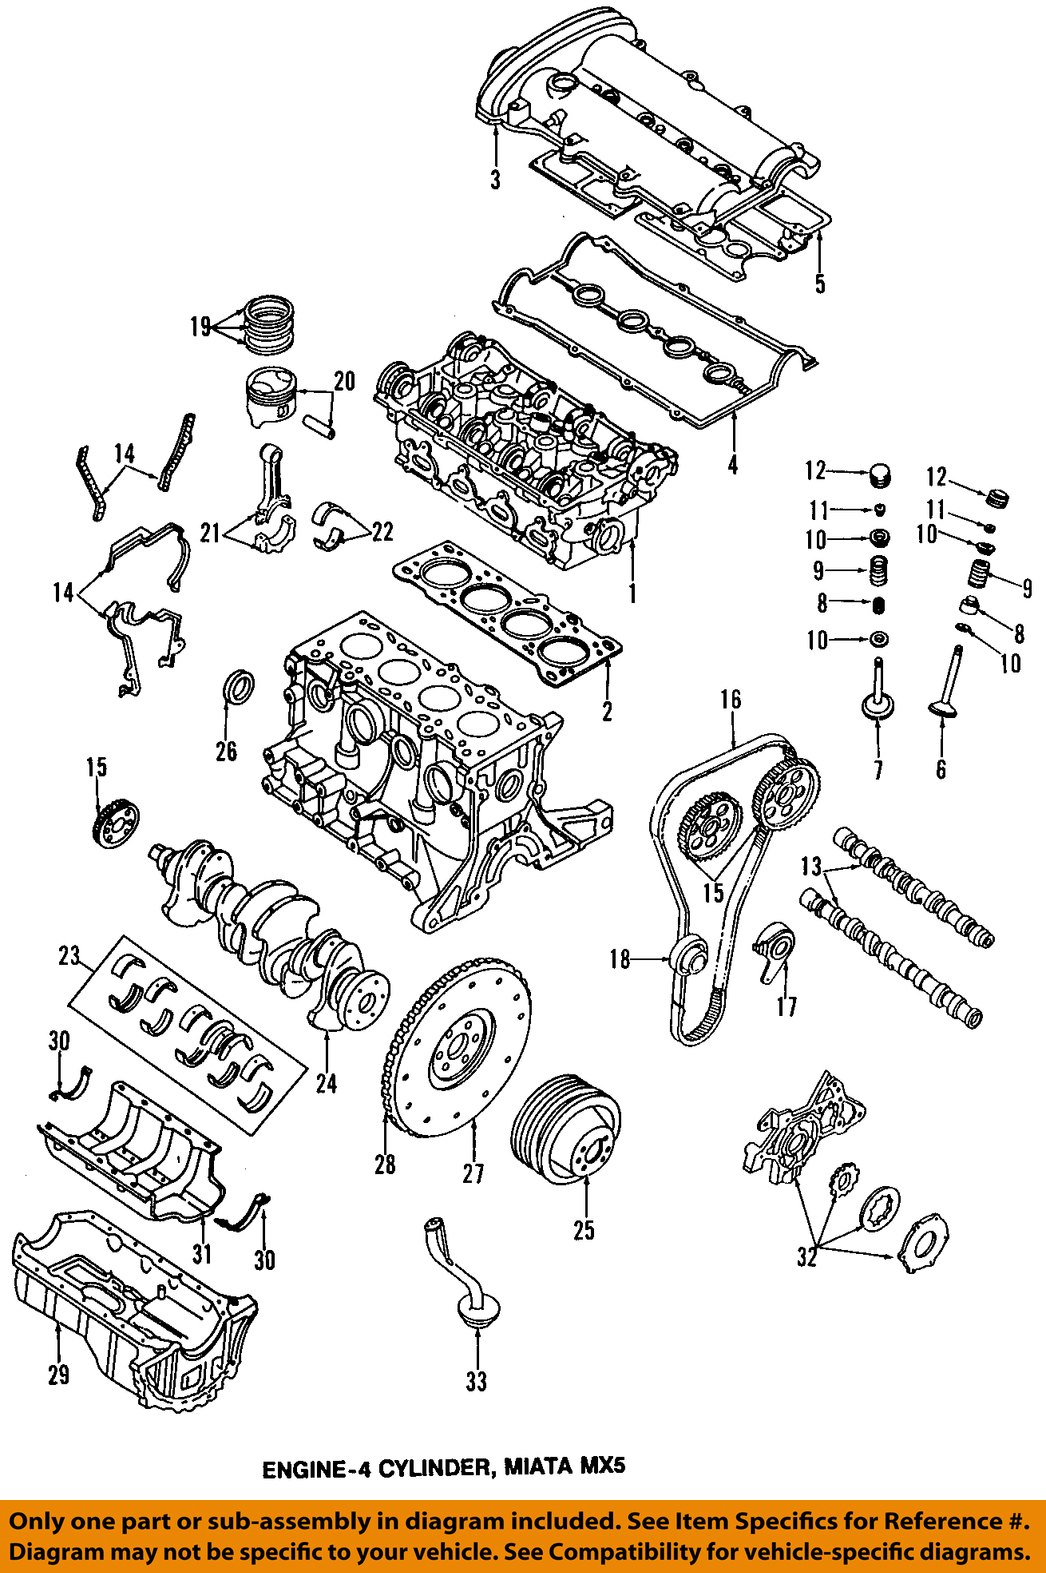 1999 Miata Engine Diagram Wiring Library Crankshaft Pictures U2022 Rh Mapavick Co Uk 1990 Mazda